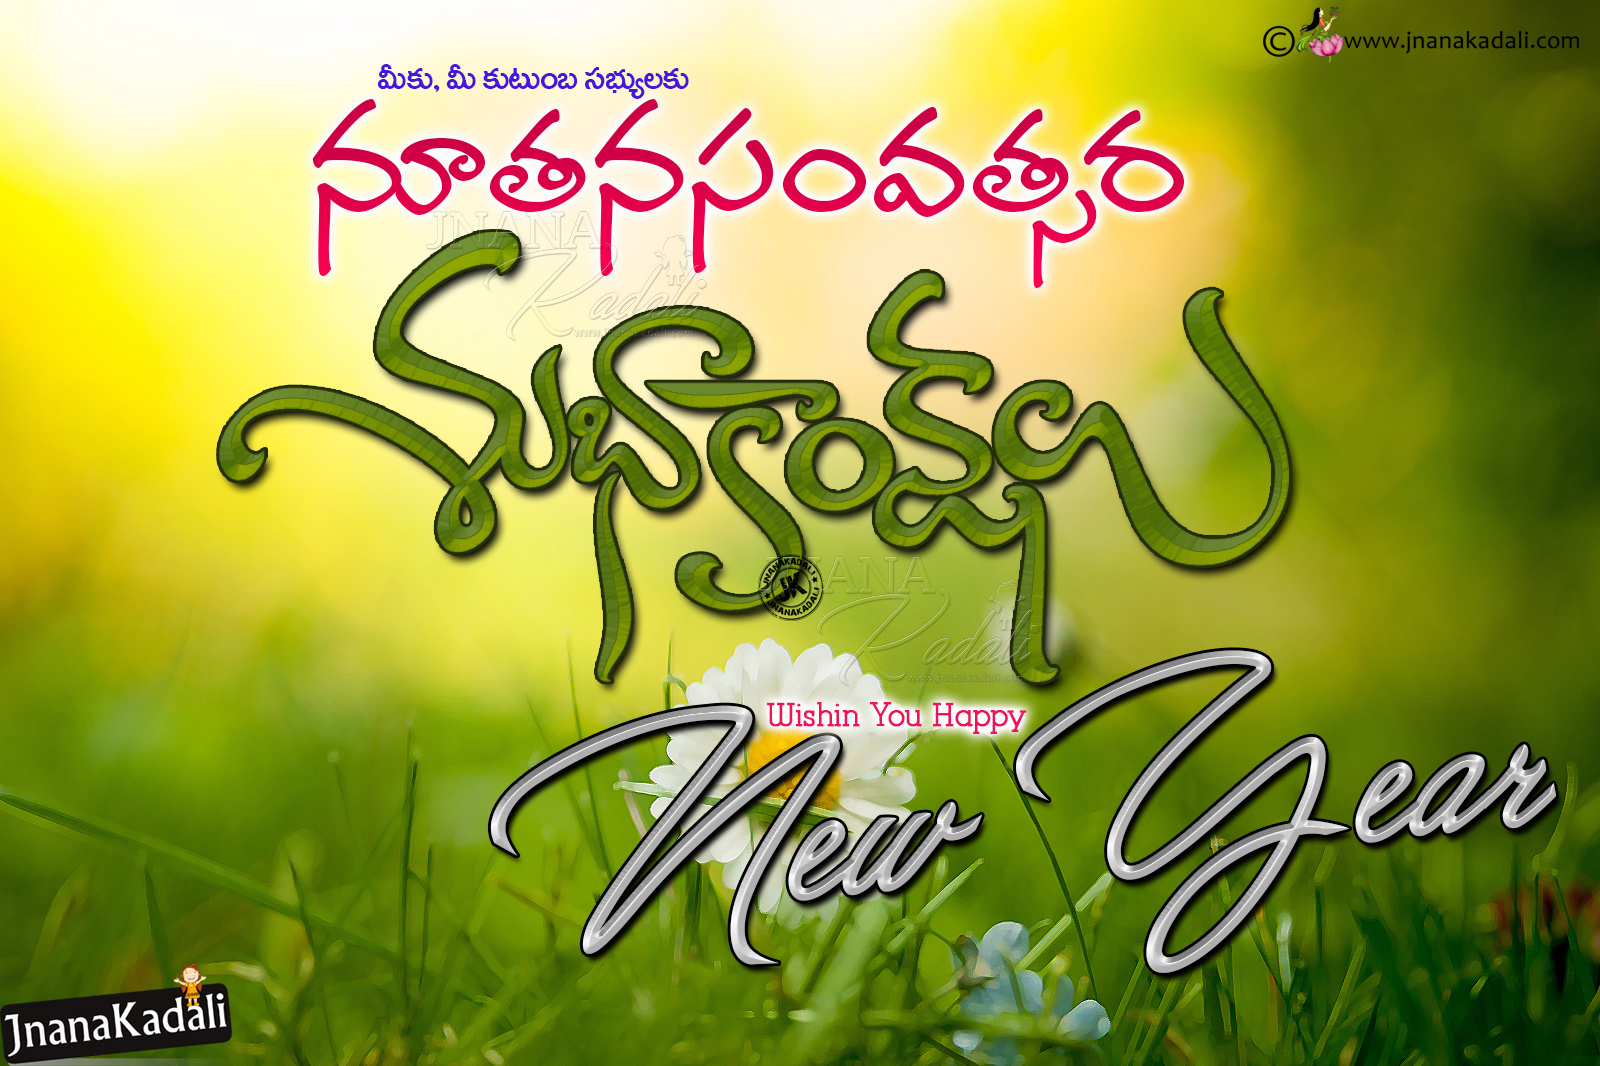 Wish You Happy New Year Greetings in telugu-Latest New ...